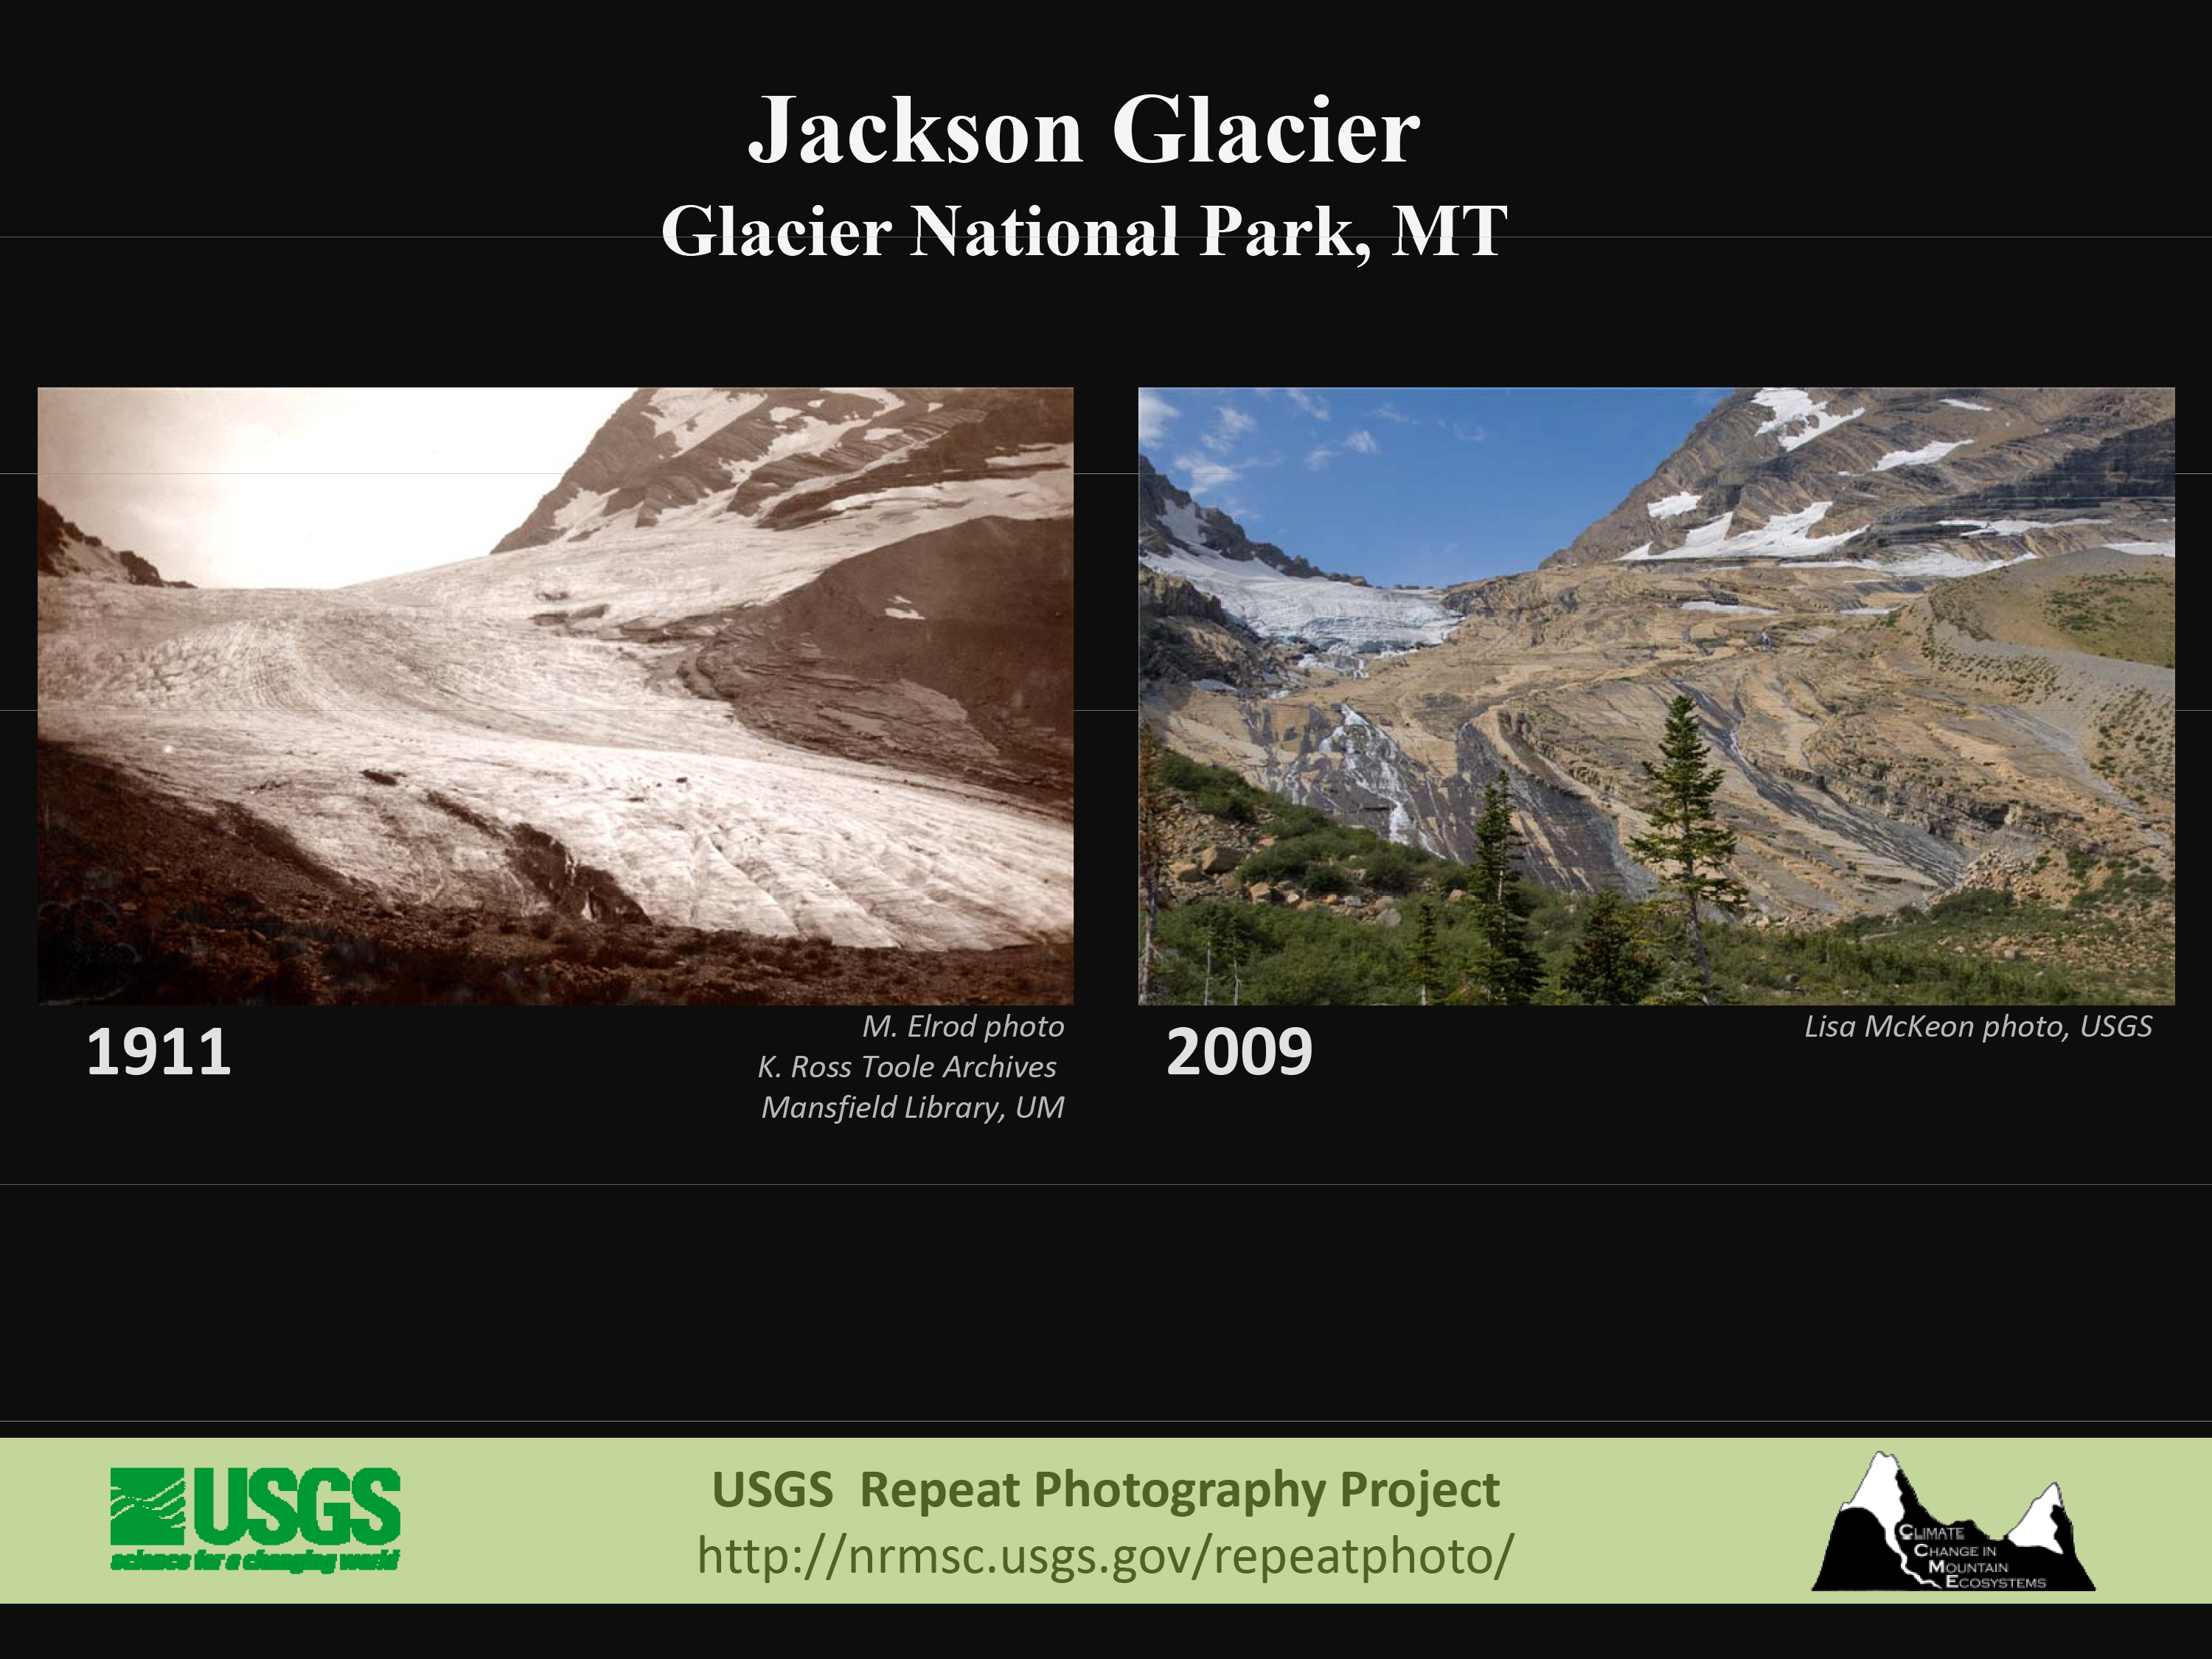 Glacier Climate Change, Glacier National Park, Glacier Climate Action, Melting Glaciers, Montana, Glacier, Global Warming, Climate, Action, Groups, Events, Whitefish, Kalispell, West Glacier, Cplumbia Falls, usgs, Glacier Comparison,